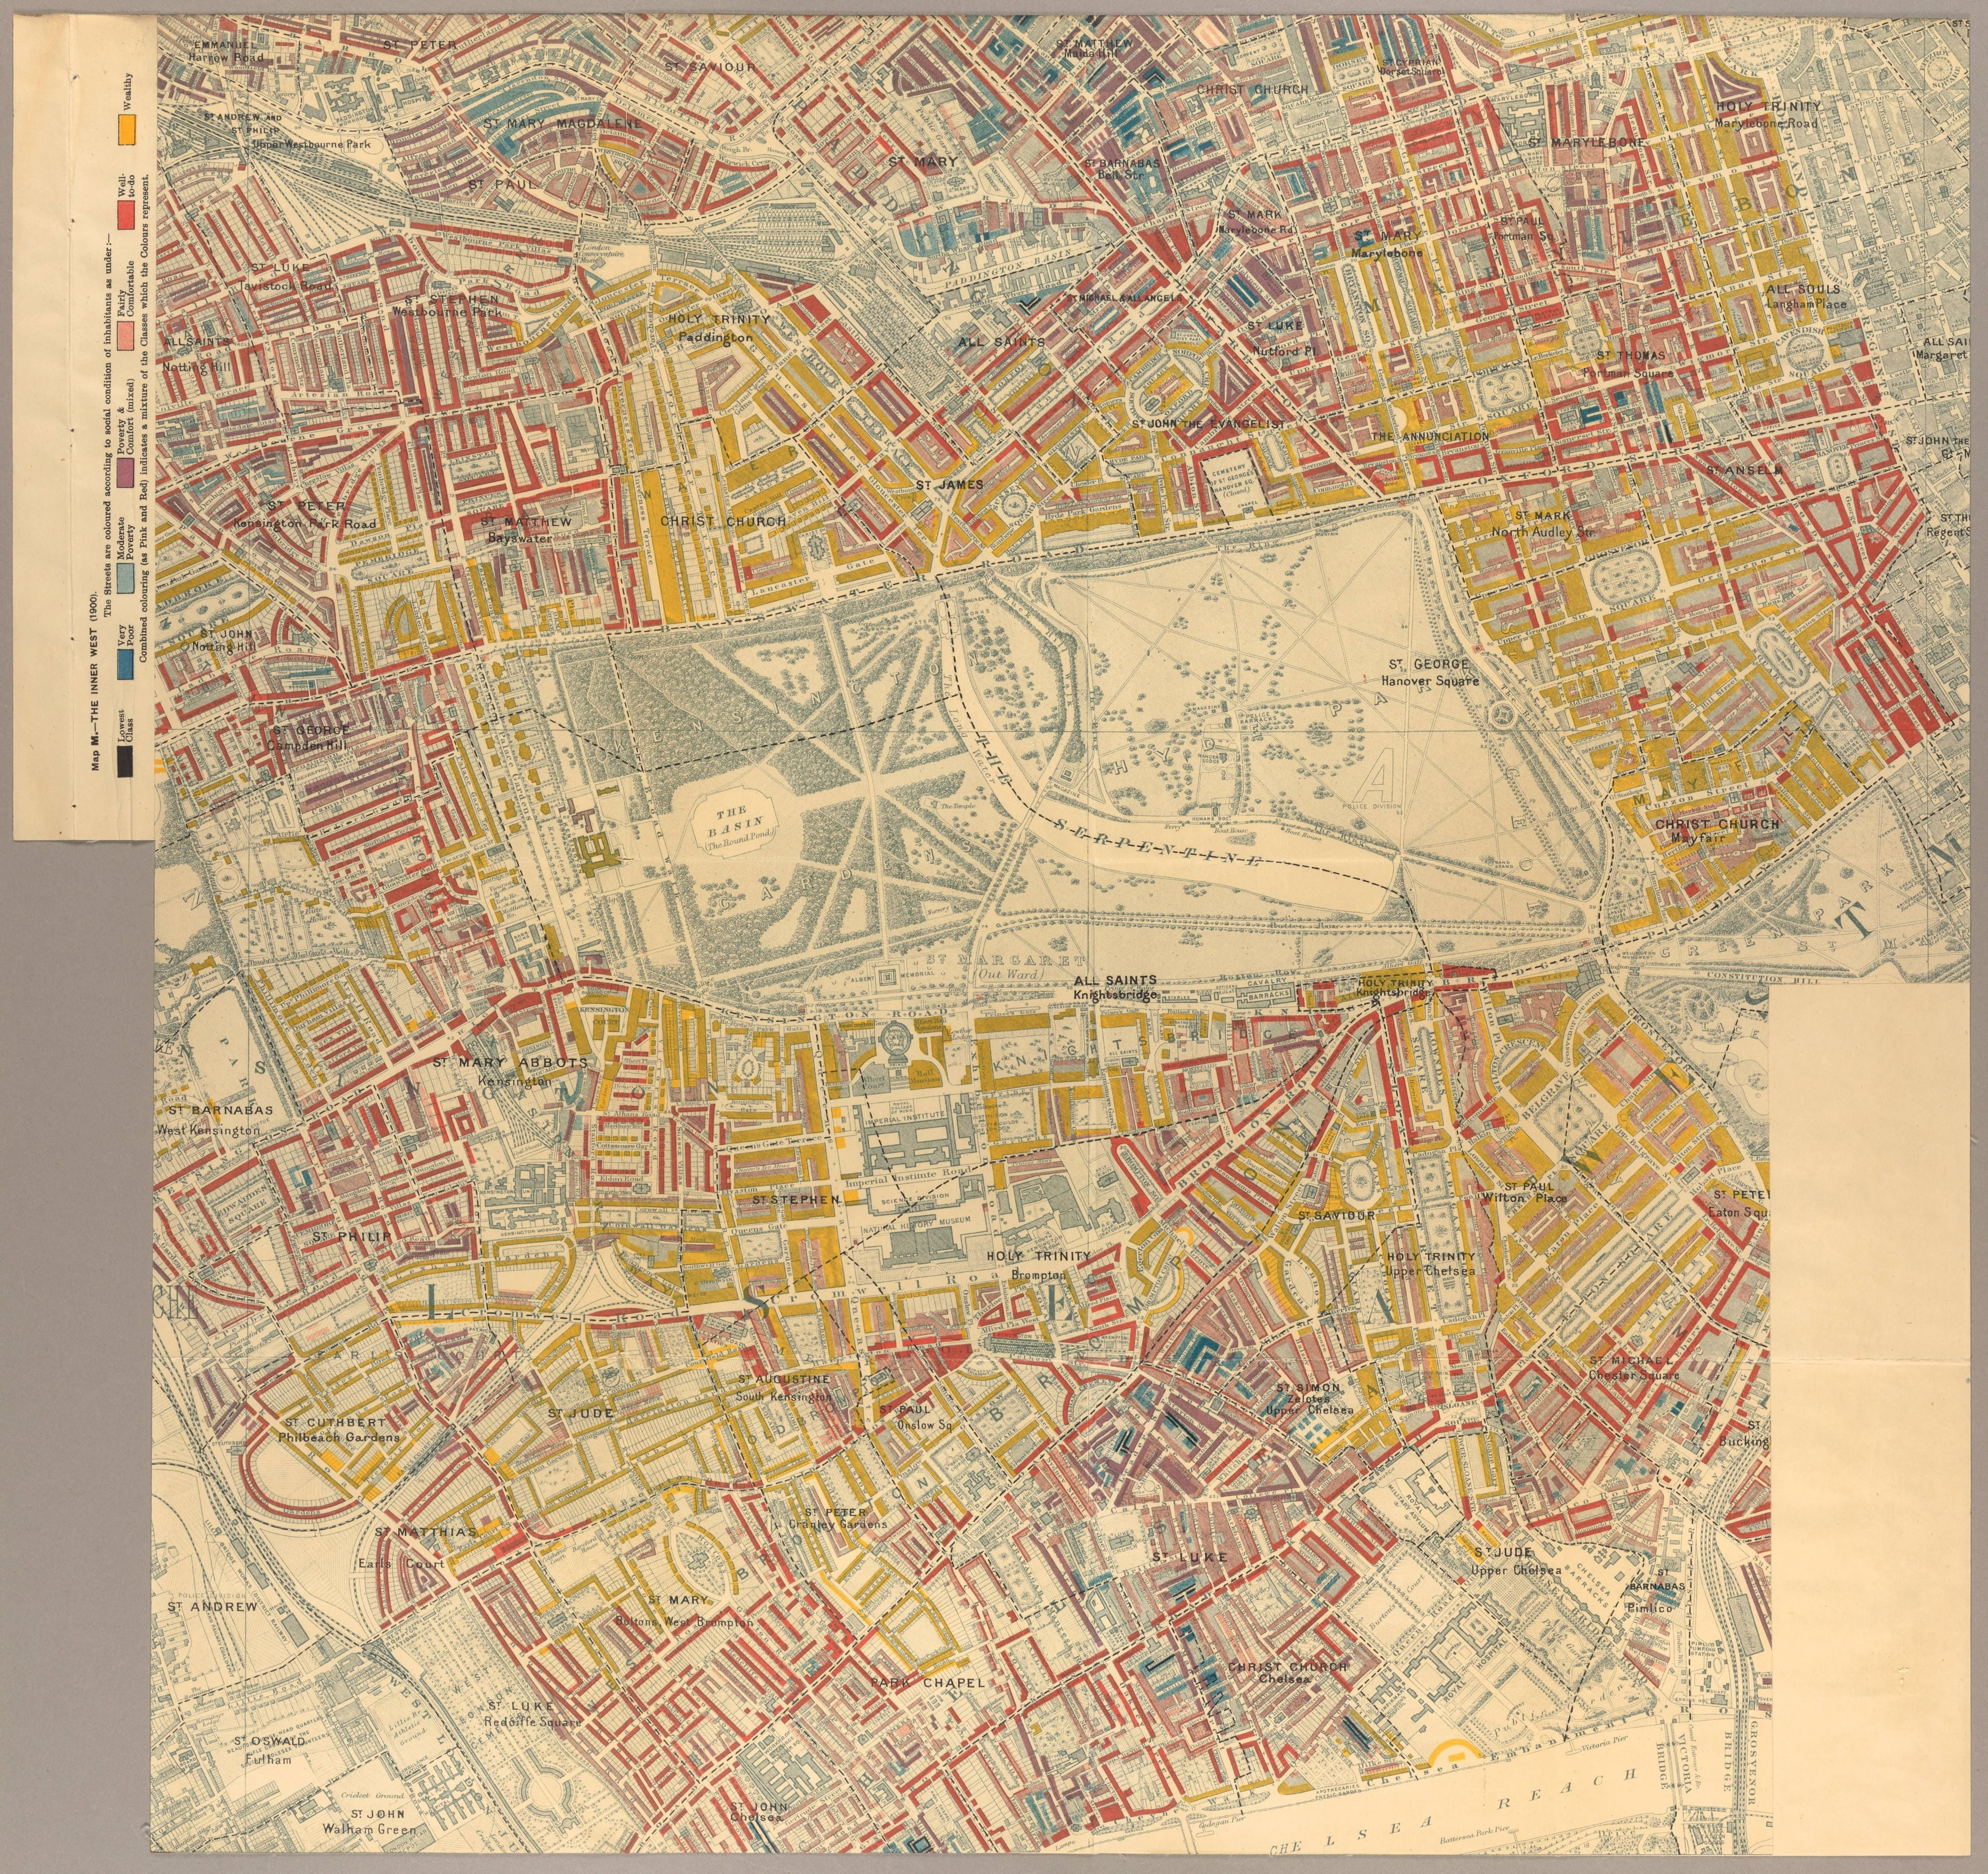 Map Of London 1900.Classes In The Inner West Of London 1900 Map London Demography